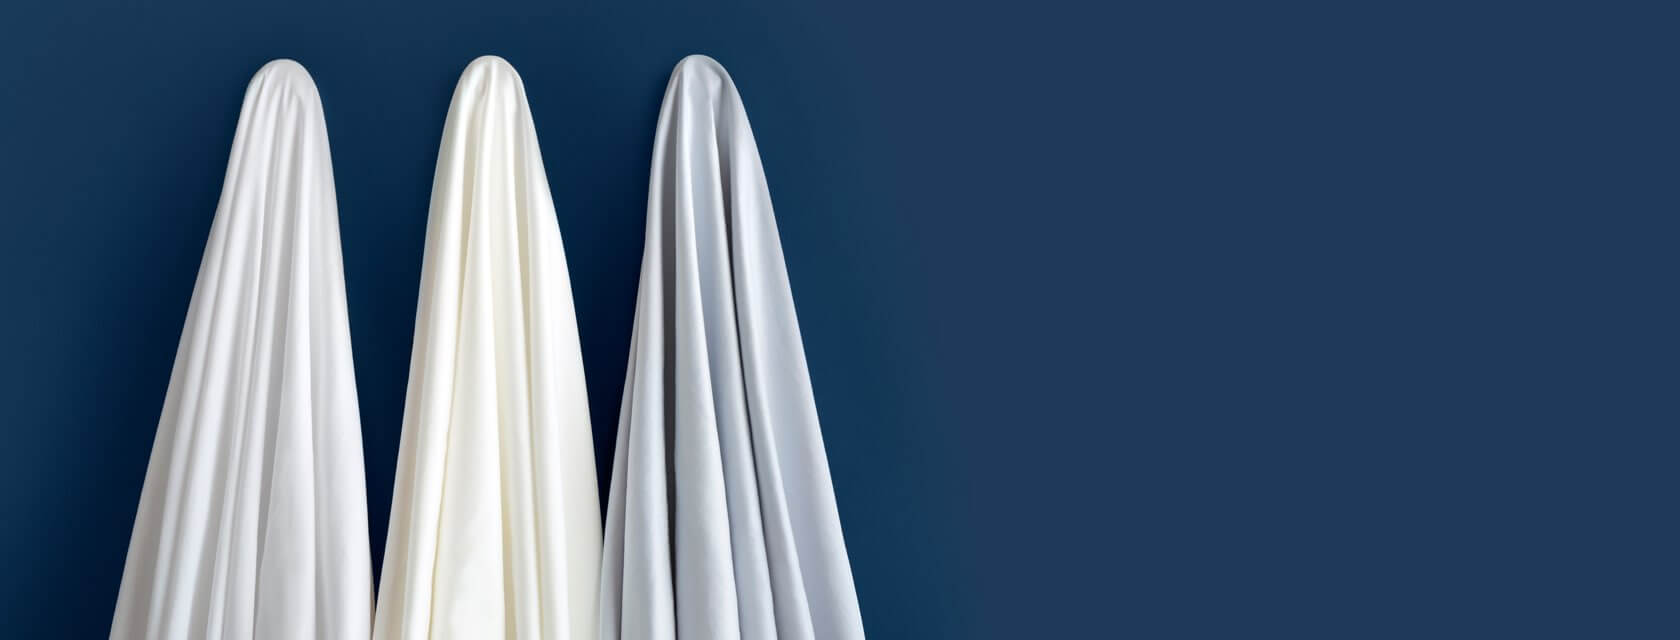 All three colors of Saatva sheets.